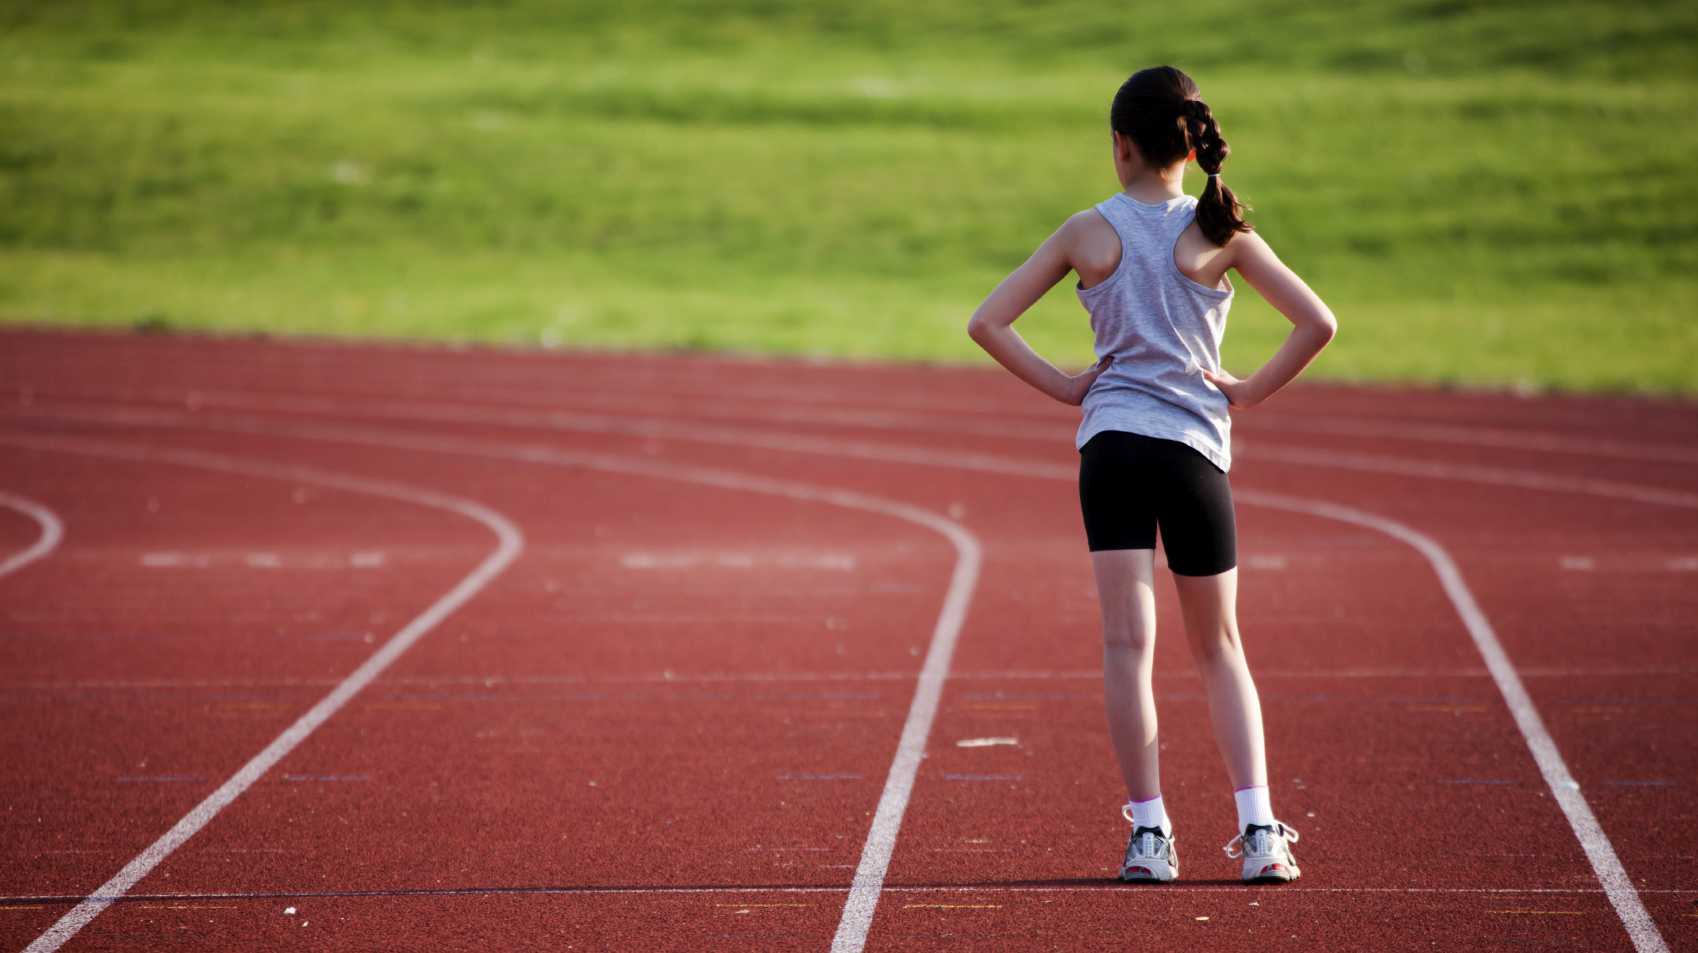 Todays Children Less Fit Than Previous Generations